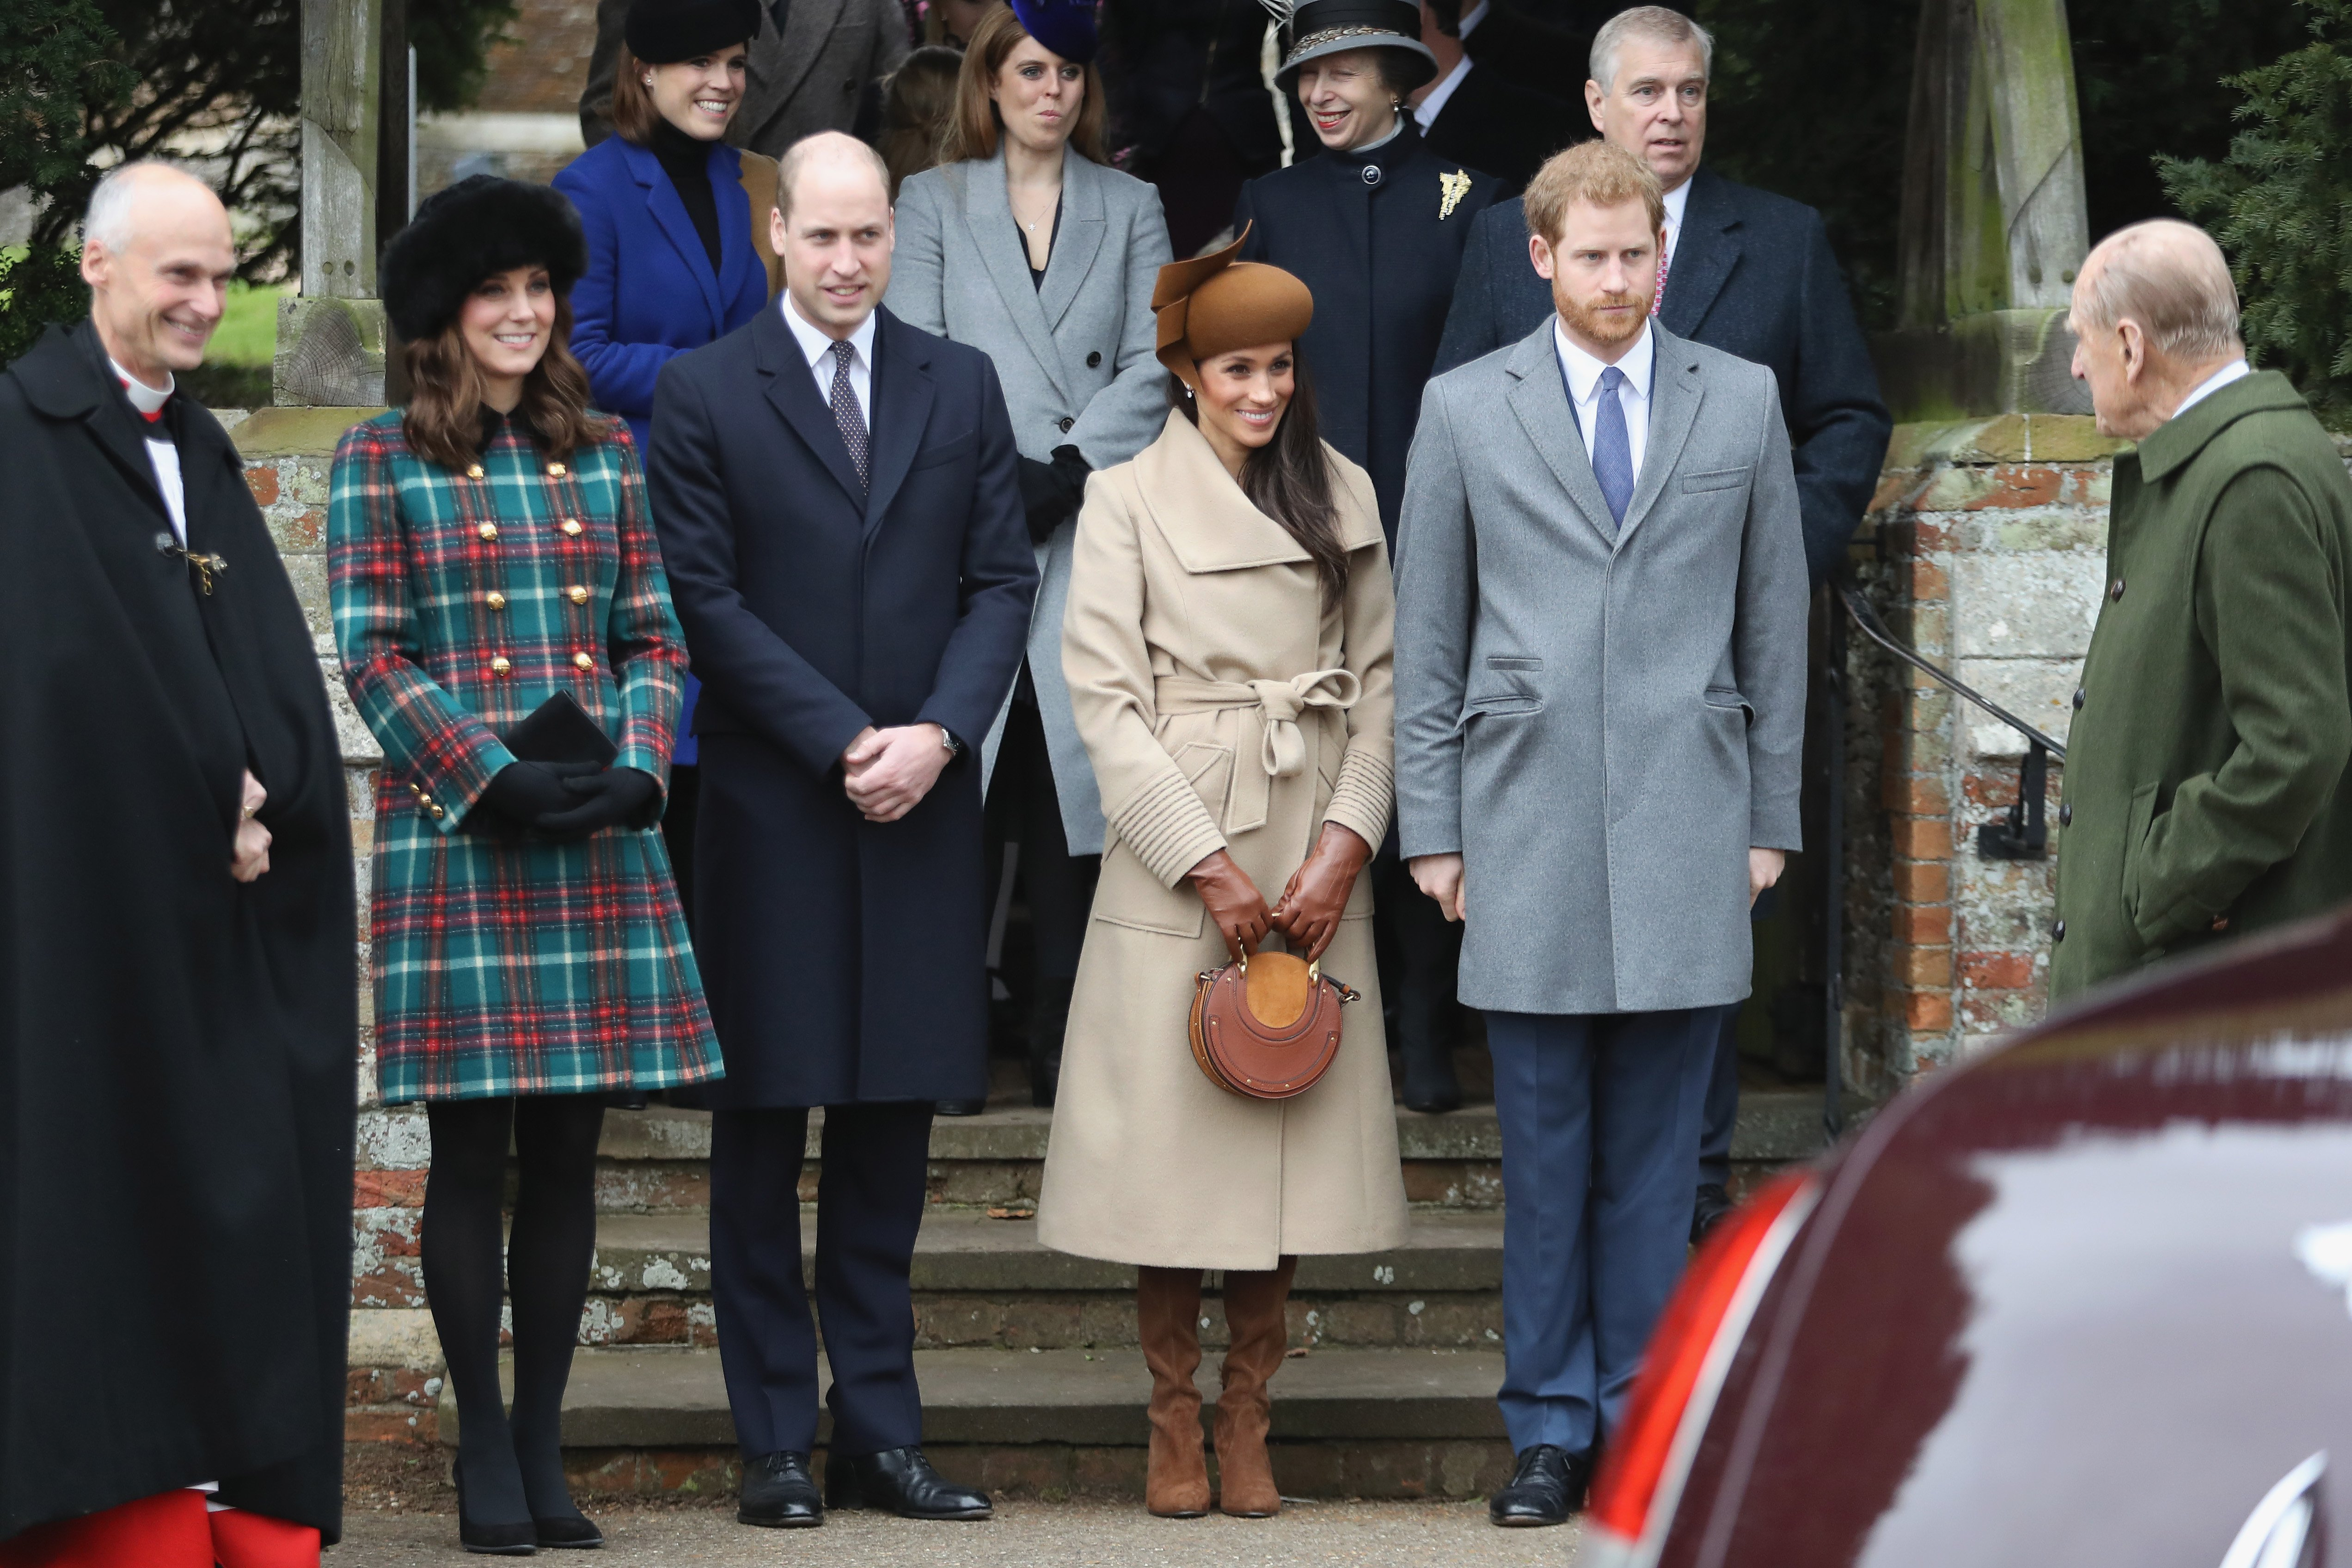 Image Credits: Getty Images / Chris Jackson   Princess Beatrice, Princess Eugenie, Princess Anne, Princess Royal, Prince Andrew, Duke of York, Prince William, Duke of Cambridge, Prince Philip, Duke of Edinburgh, Catherine, Duchess of Cambridge, Meghan Markle and Prince Harry attend Christmas Day Church service at Church of St Mary Magdalene on December 25, 2017 in King's Lynn, England.